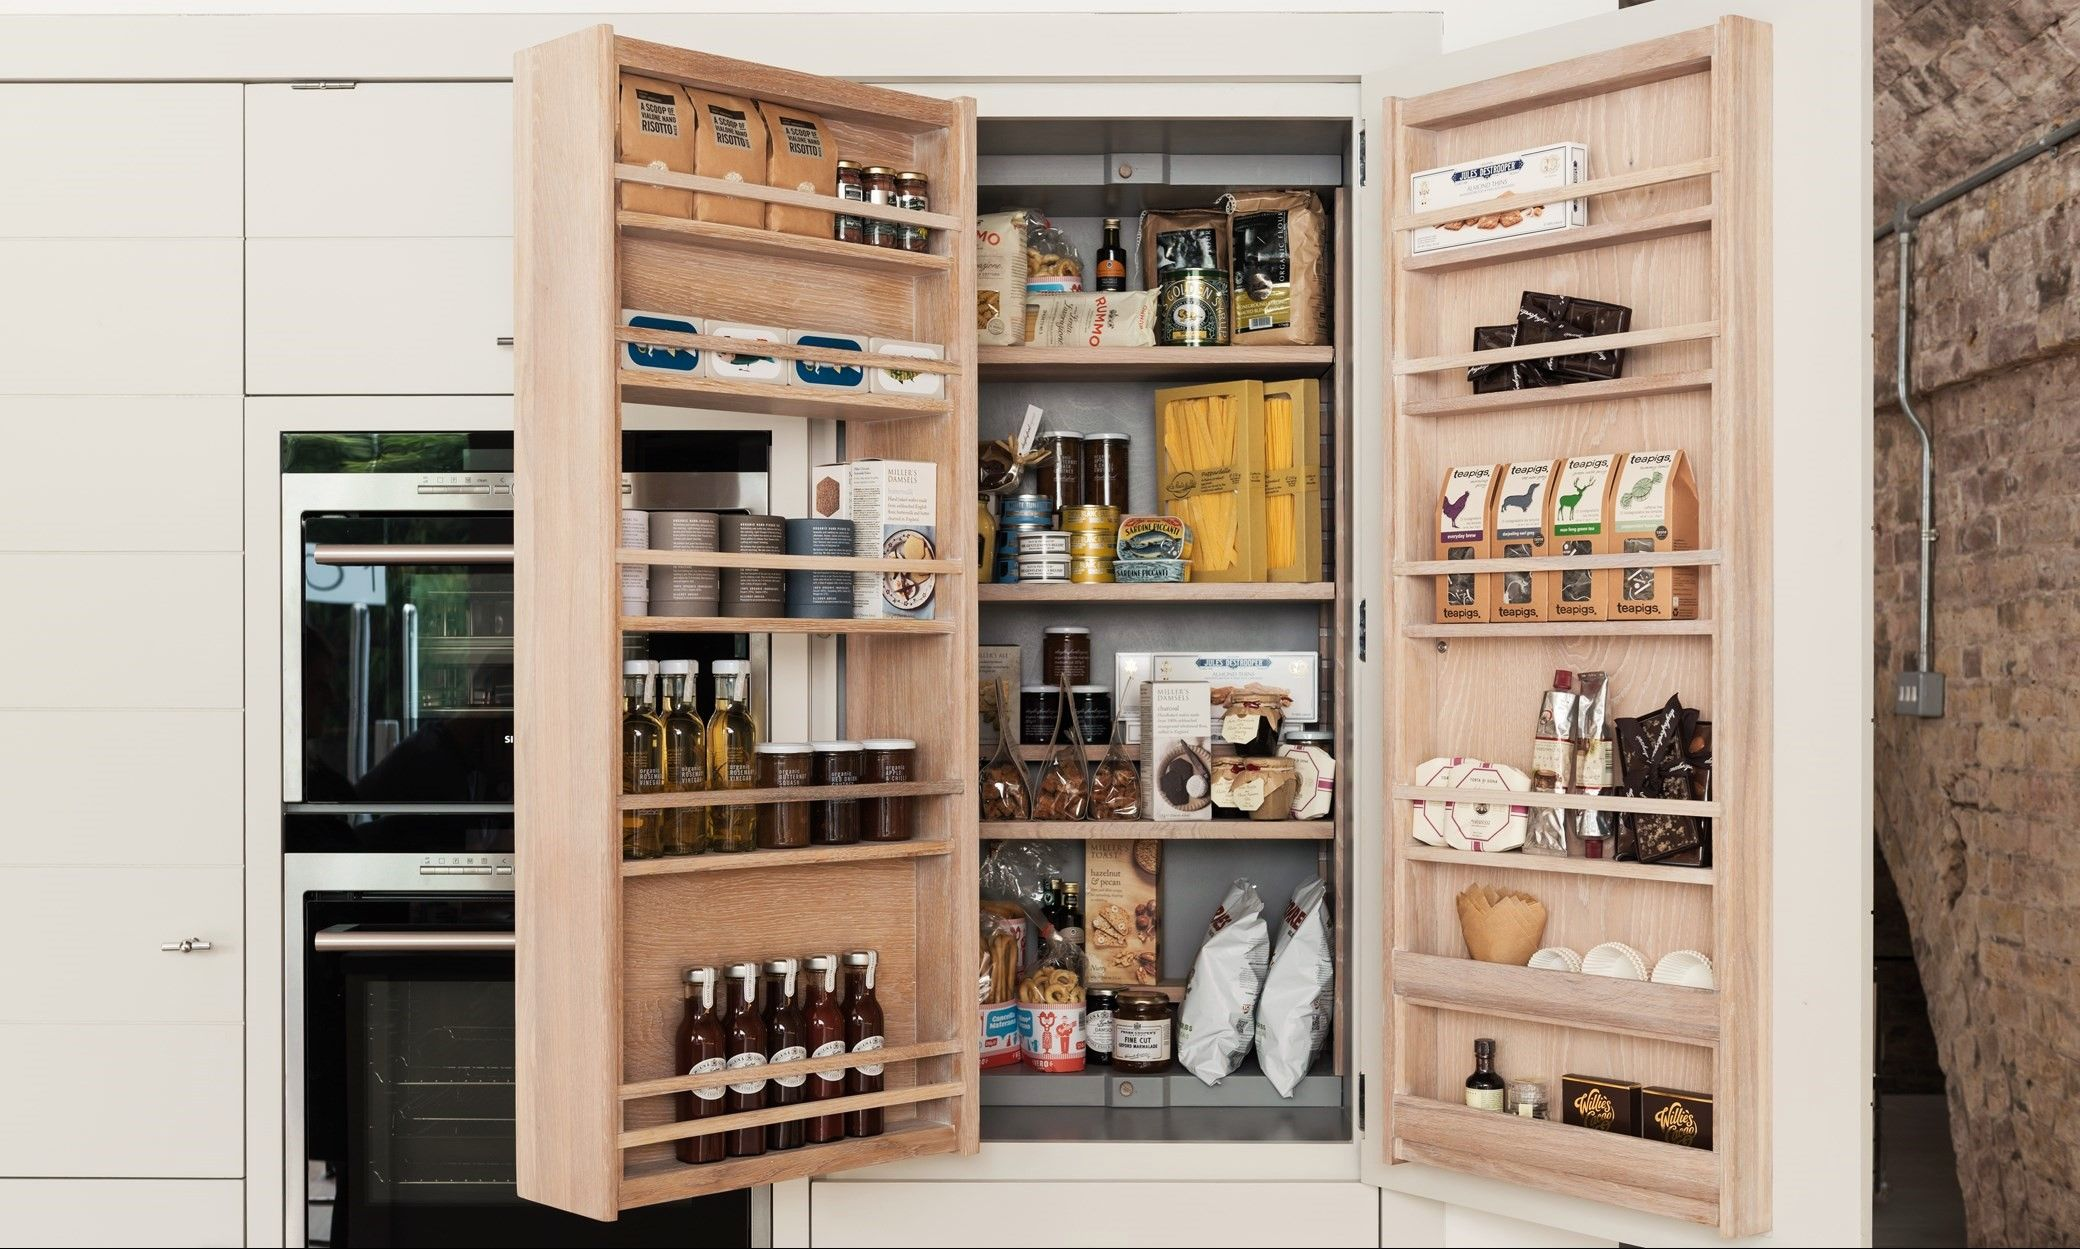 Cuisine Neptune Pantry Organization By Neptune Tegernsee Of Germany Utility